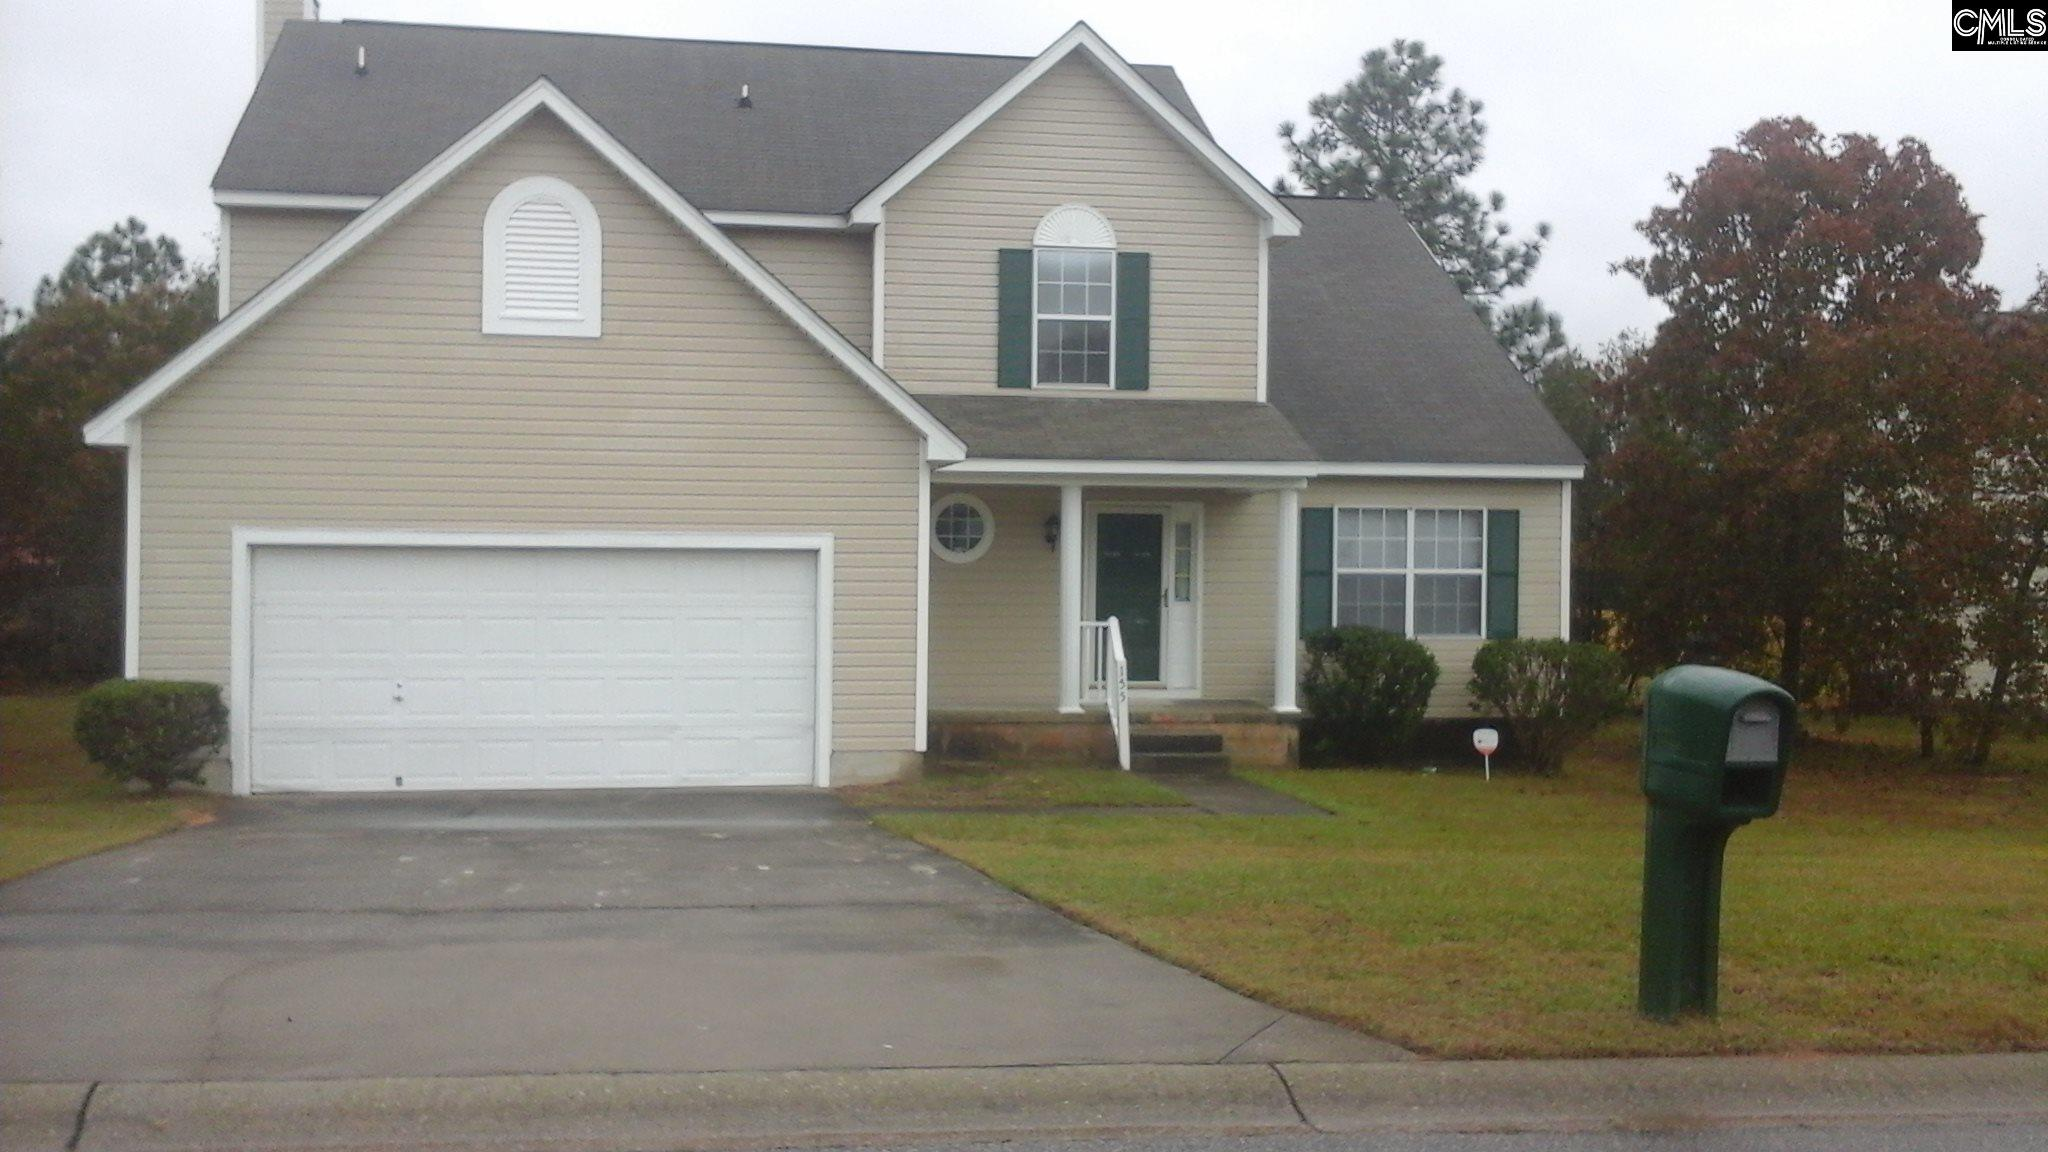 155 Brealin Gaston, SC 29053